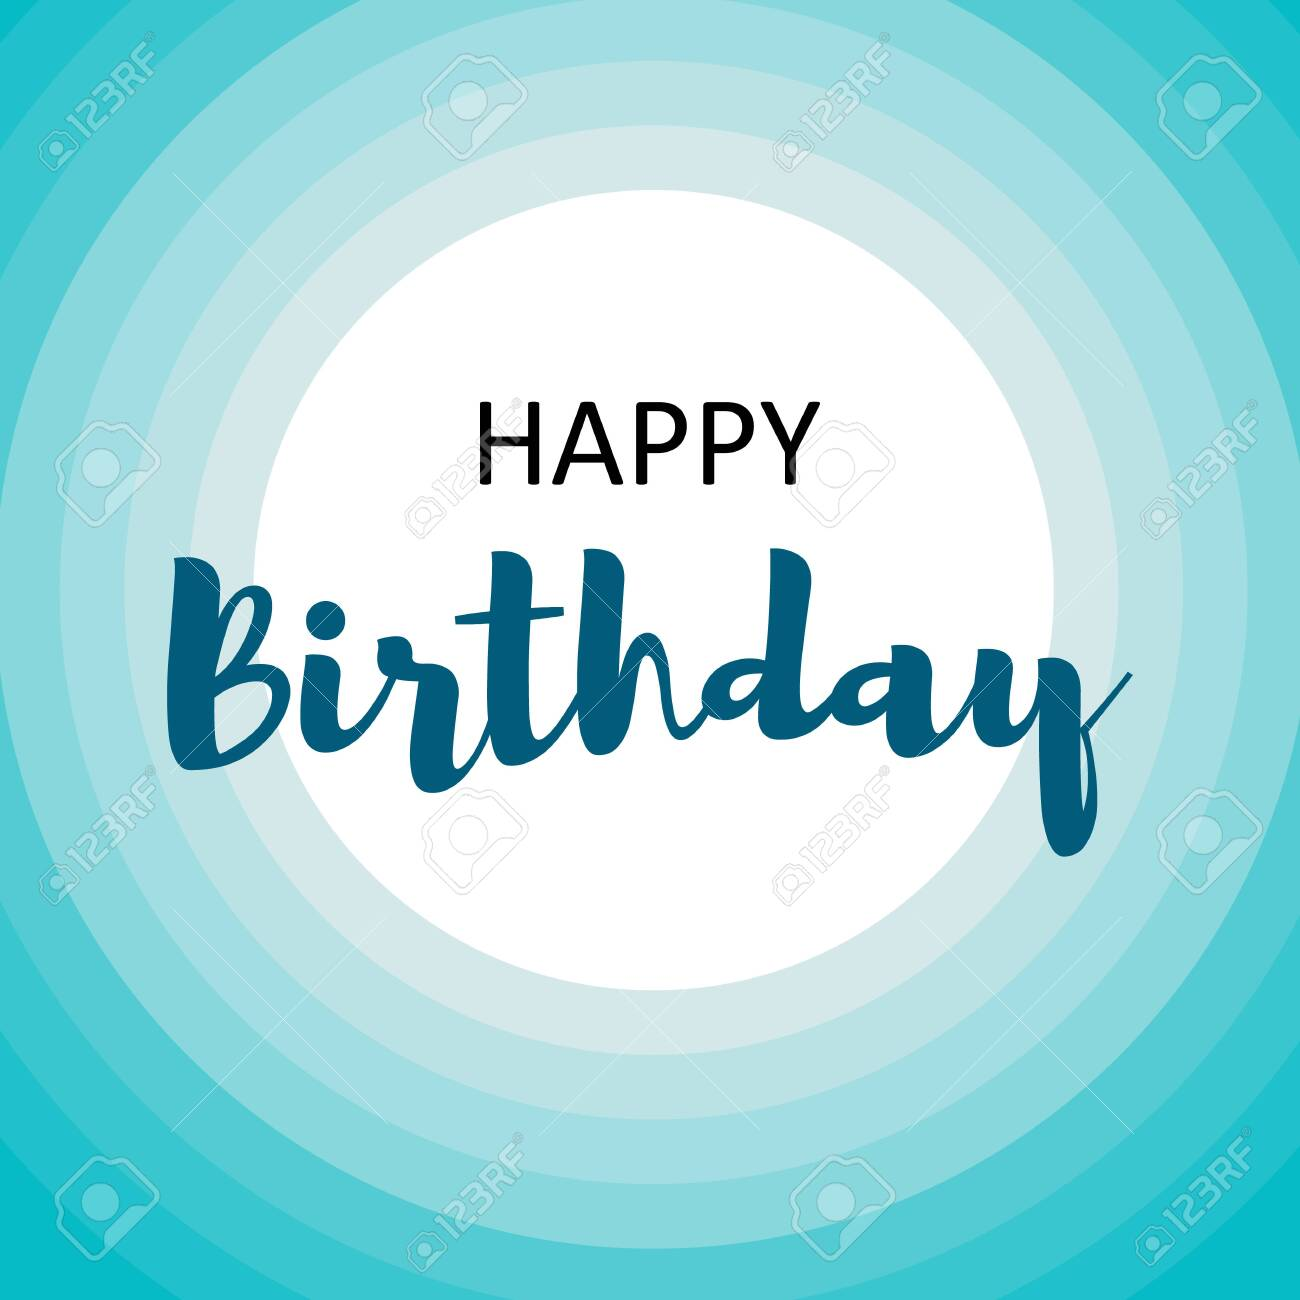 Vector Illustration Happy Birthday Card For Men On Blue Circles Royalty Free Cliparts Vectors And Stock Illustration Image 123631953